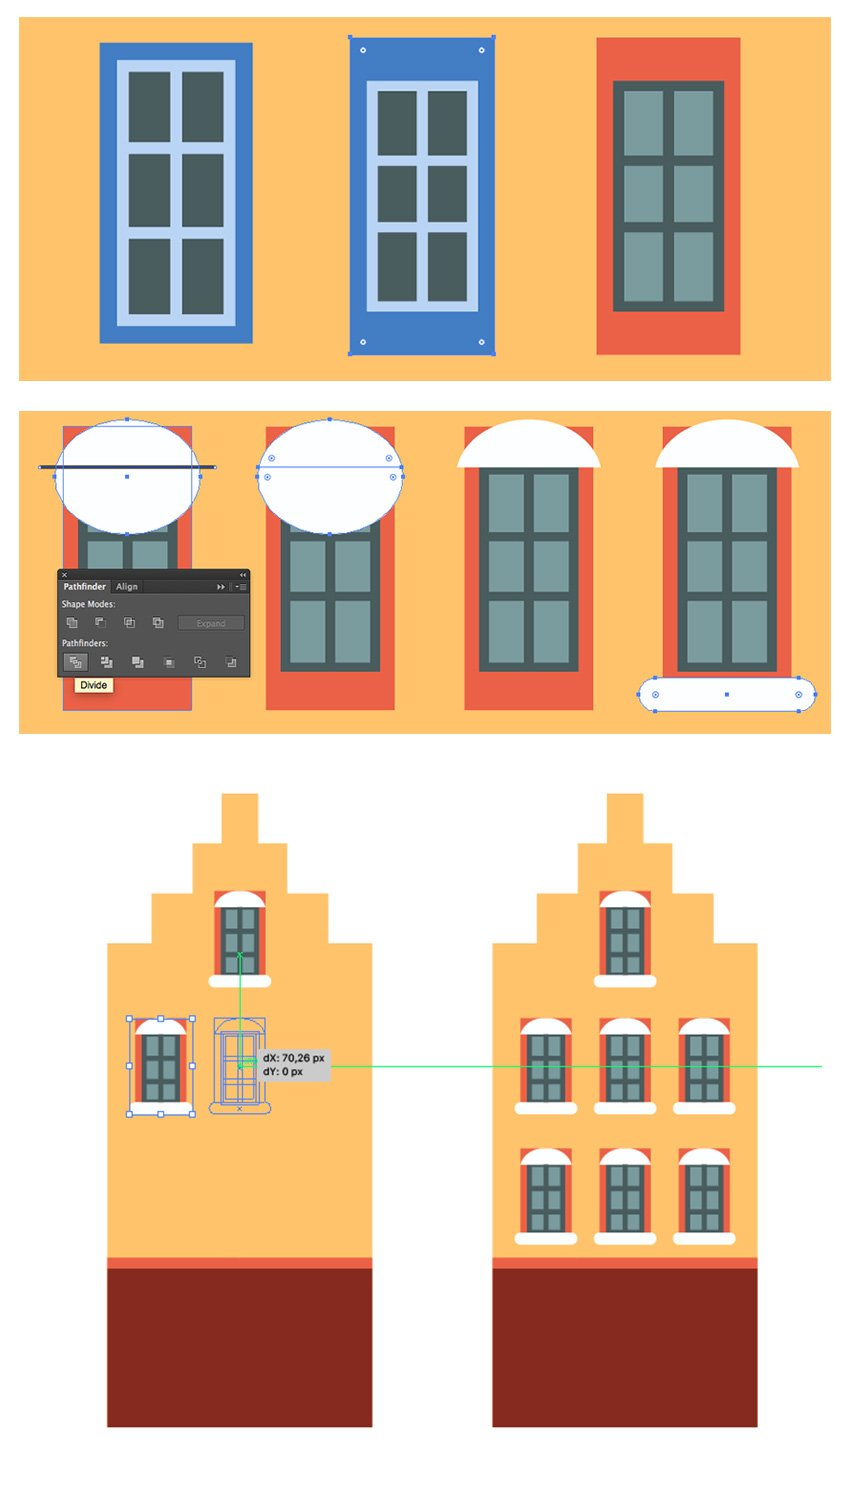 Creating and copying the windows